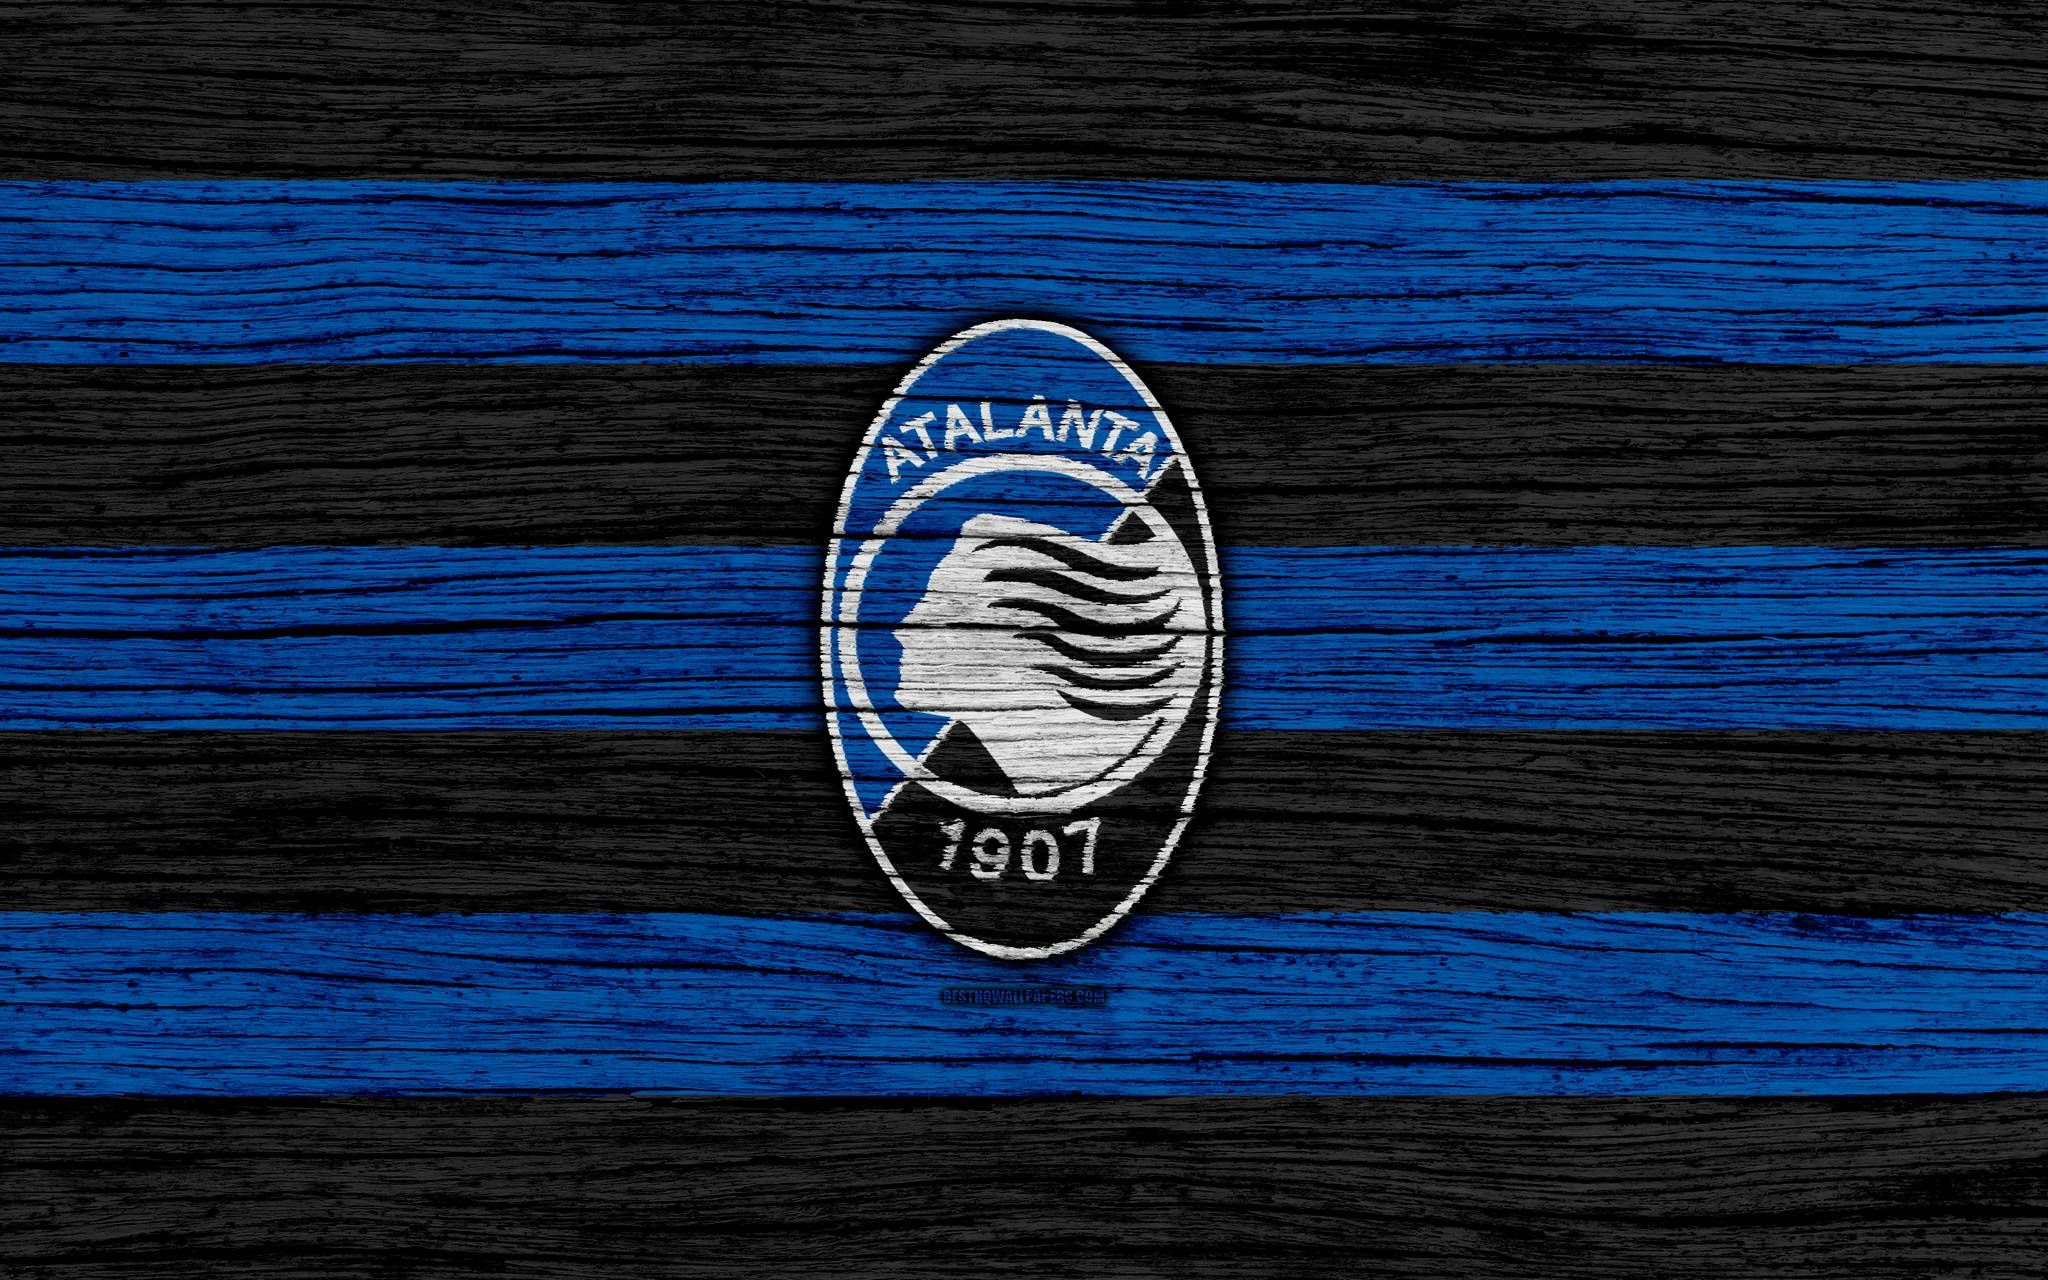 download atalanta bc wallpaper by elnaztajaddod d6 free on zedge now browse millions of popular atalanta wallpaper in 2020 atalanta bc atalanta sports wallpapers download atalanta bc wallpaper by